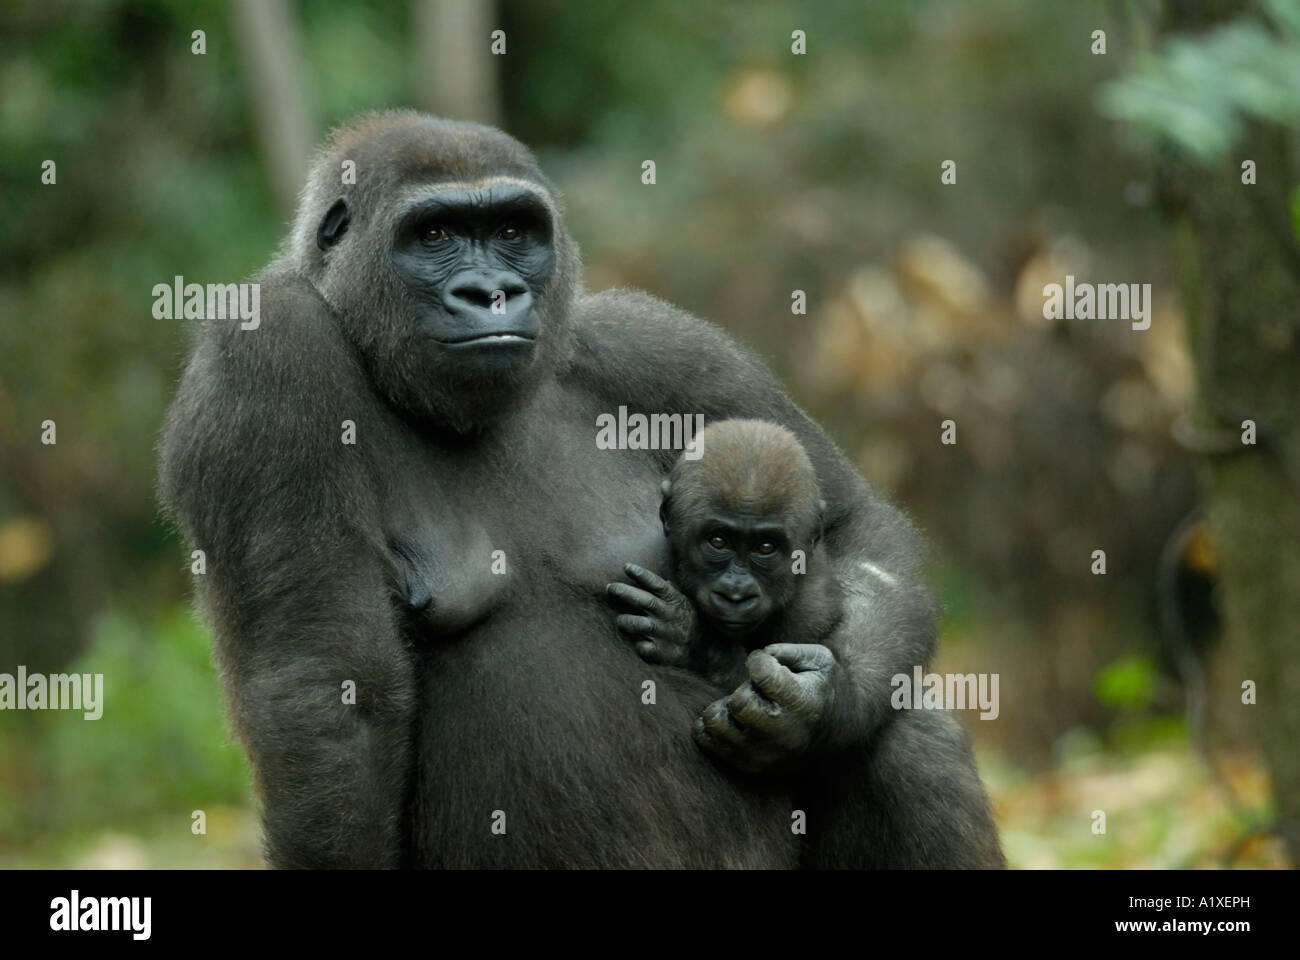 Mother gorilla holding carrying her baby - Stock Image